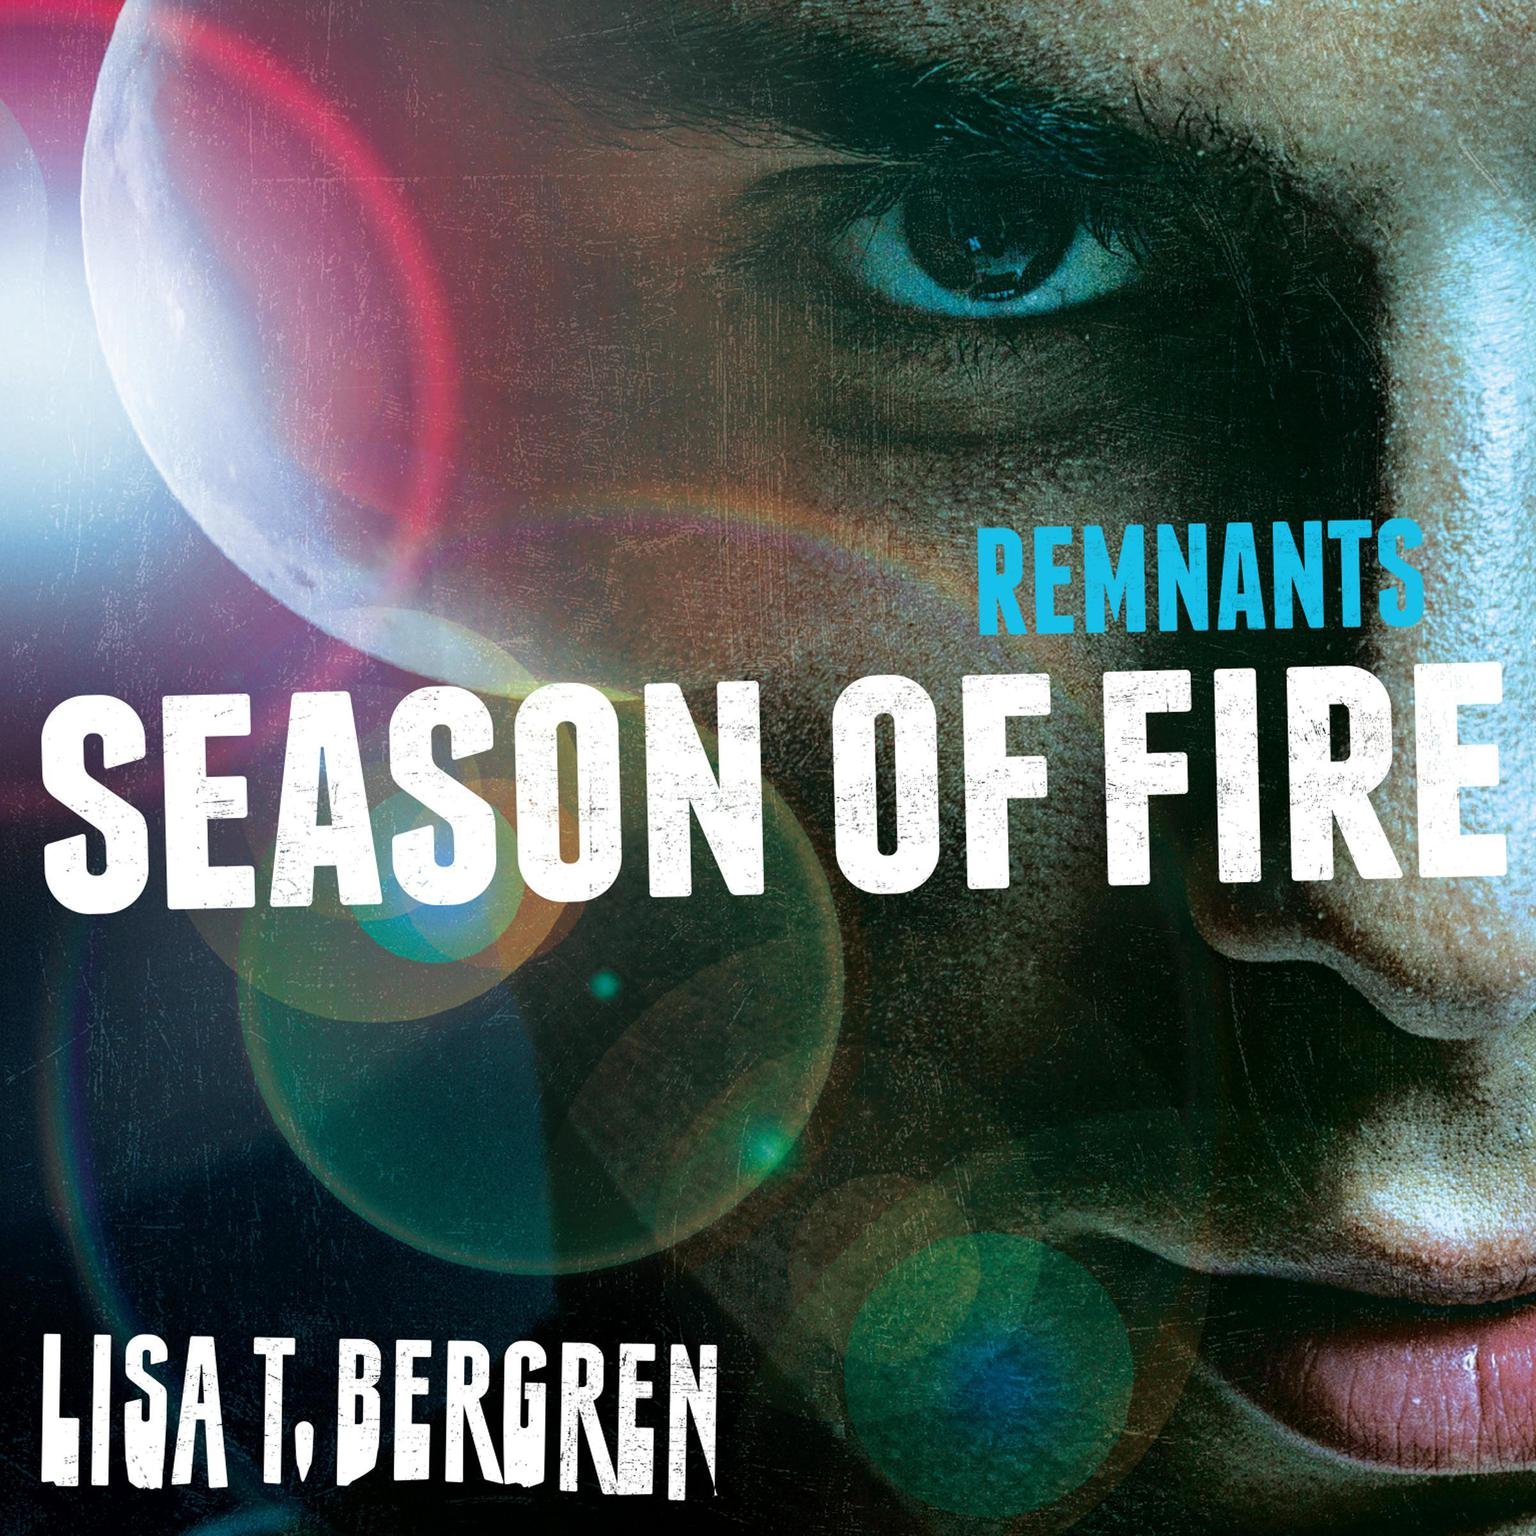 Printable Season of Fire Audiobook Cover Art